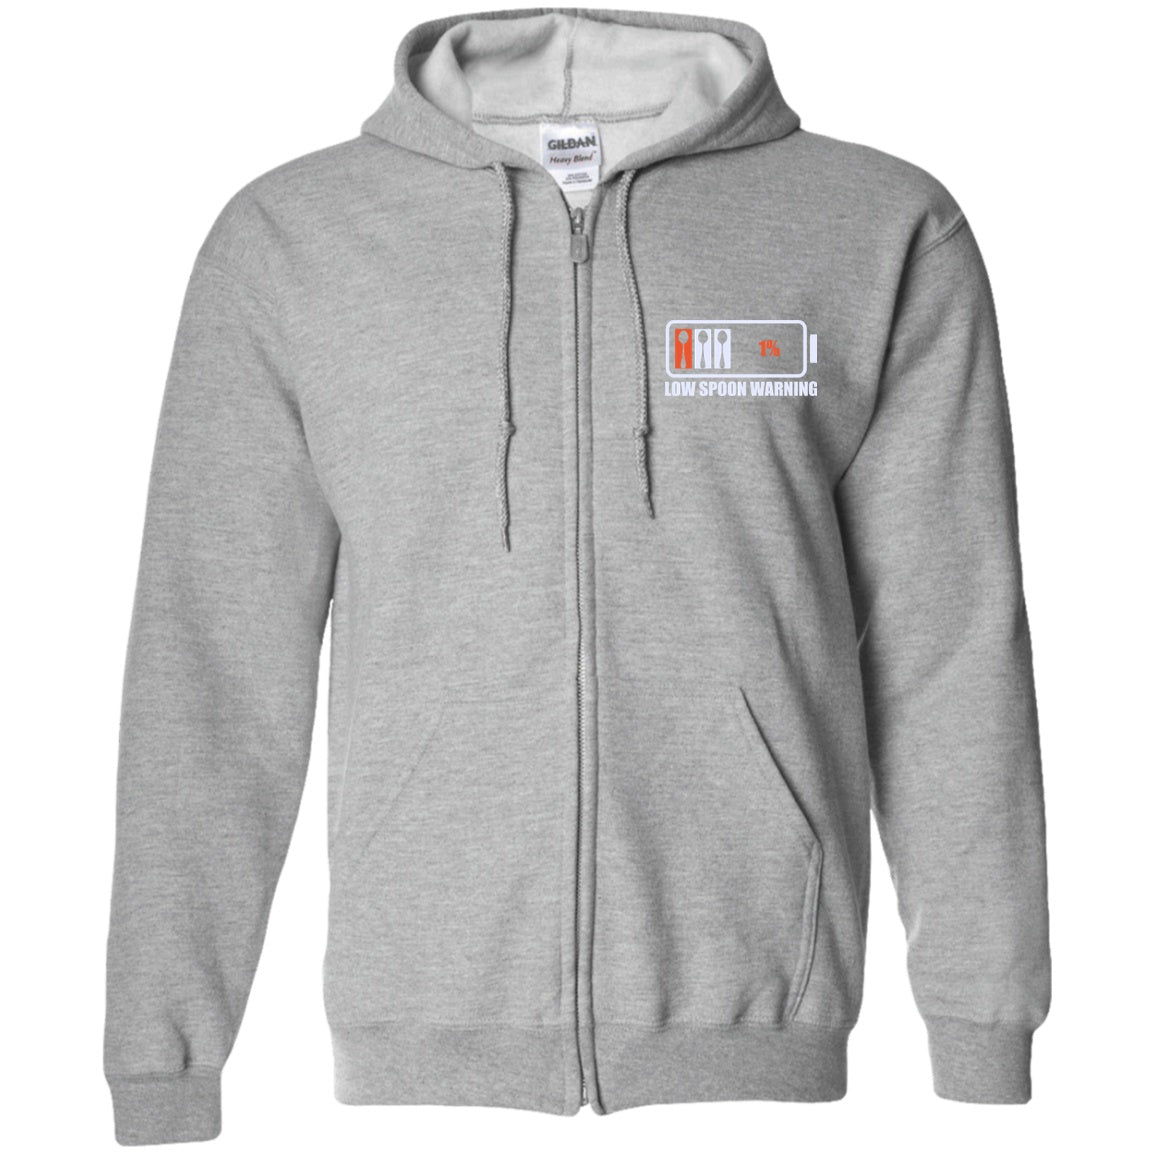 Low Spoon Warning Zip Up Hooded Sweatshirt - The Unchargeables